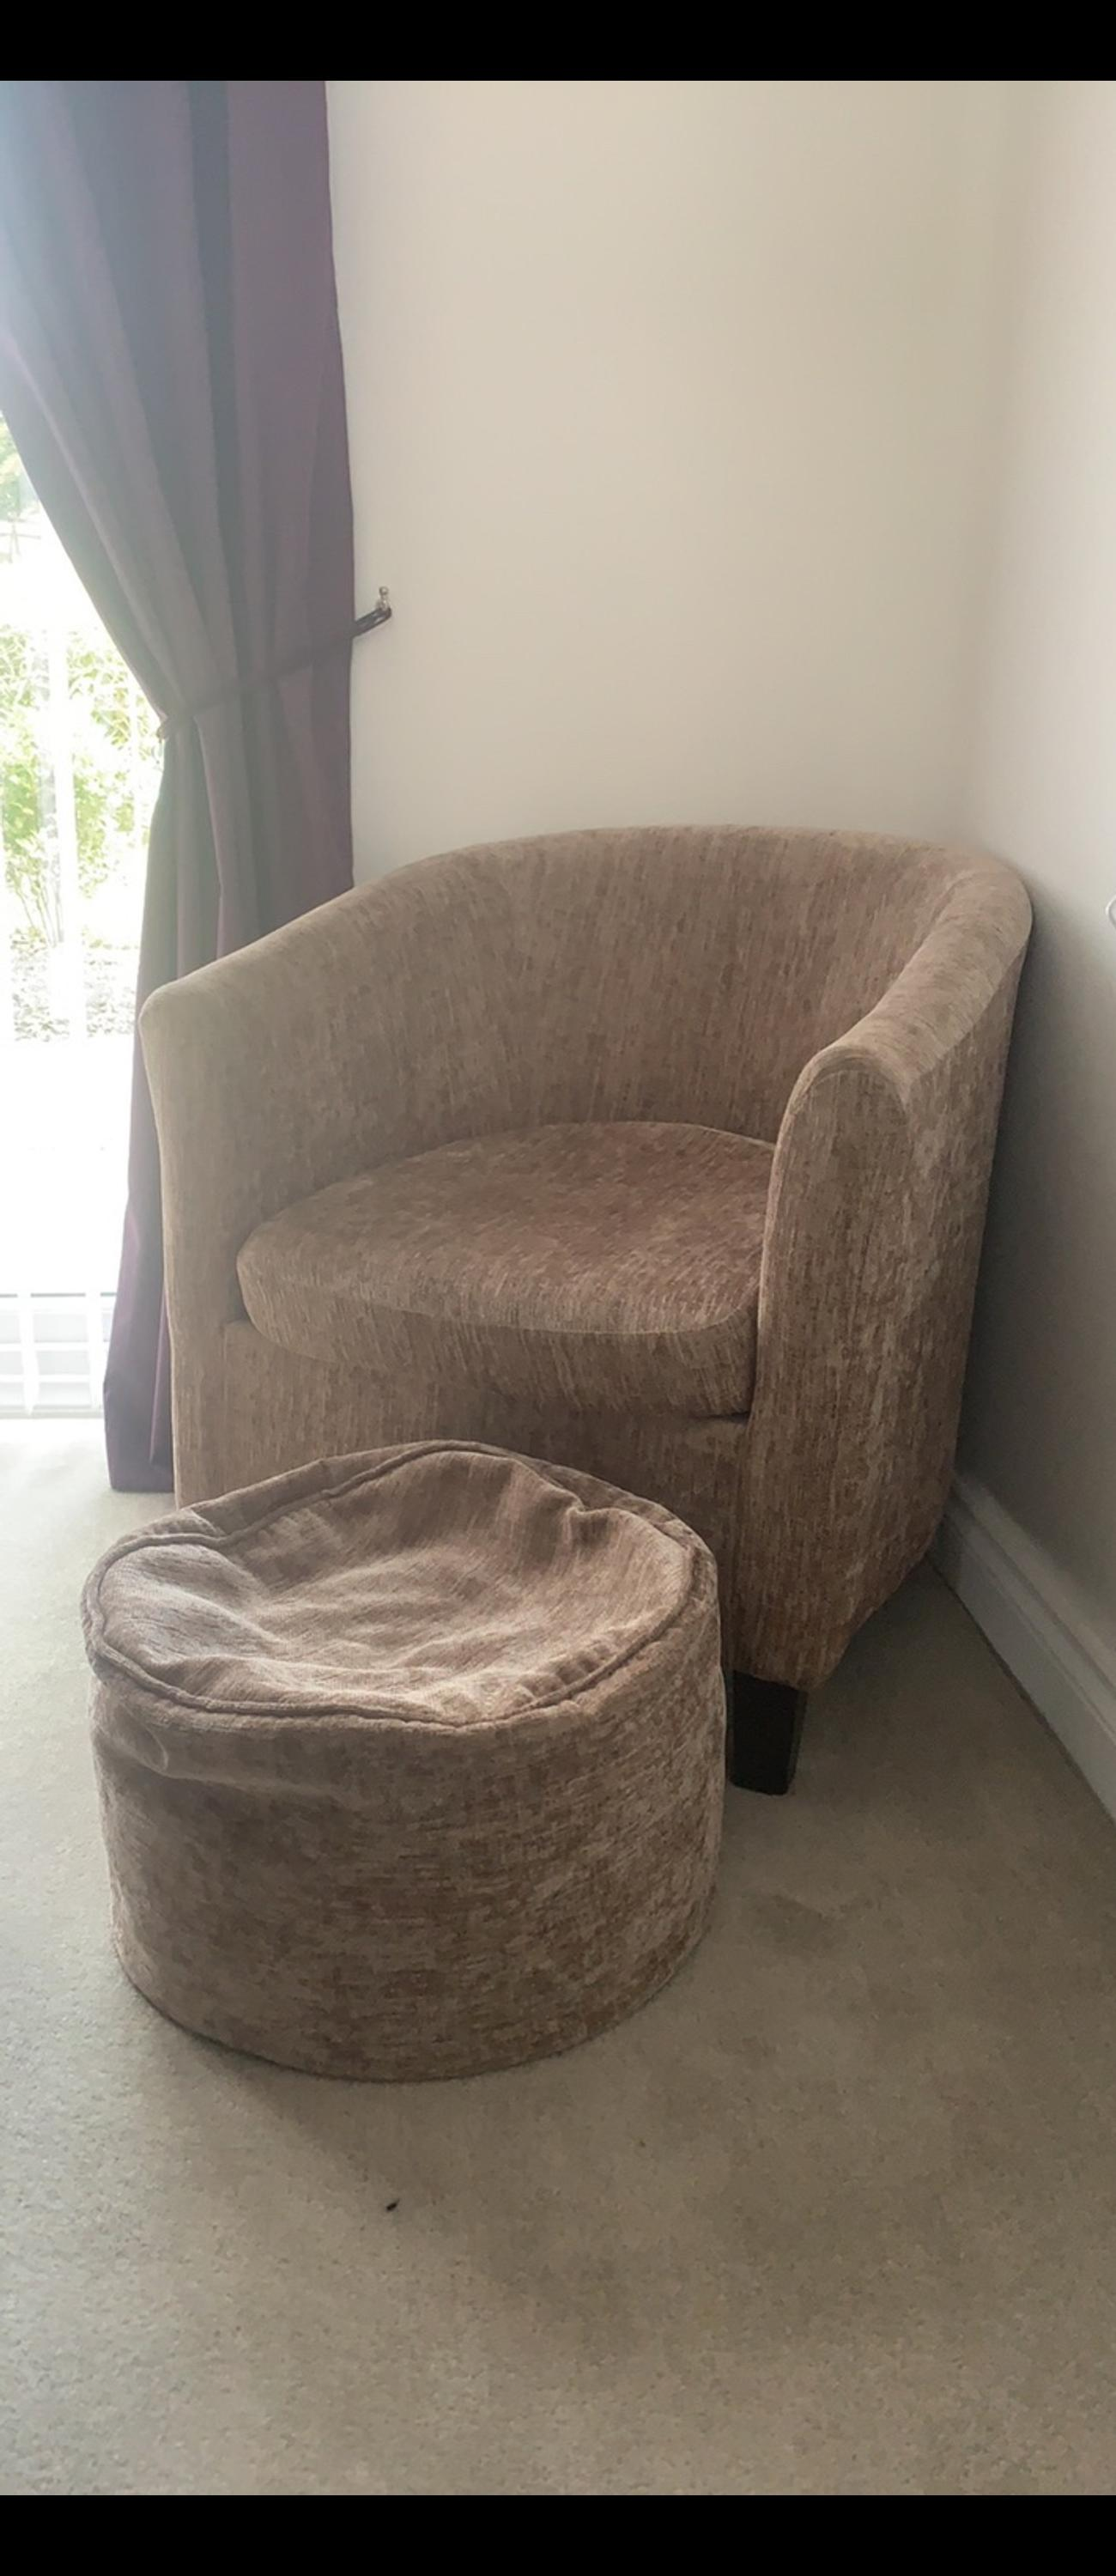 online store 5984f d0707 Dunelm Tub Chair and foot stool